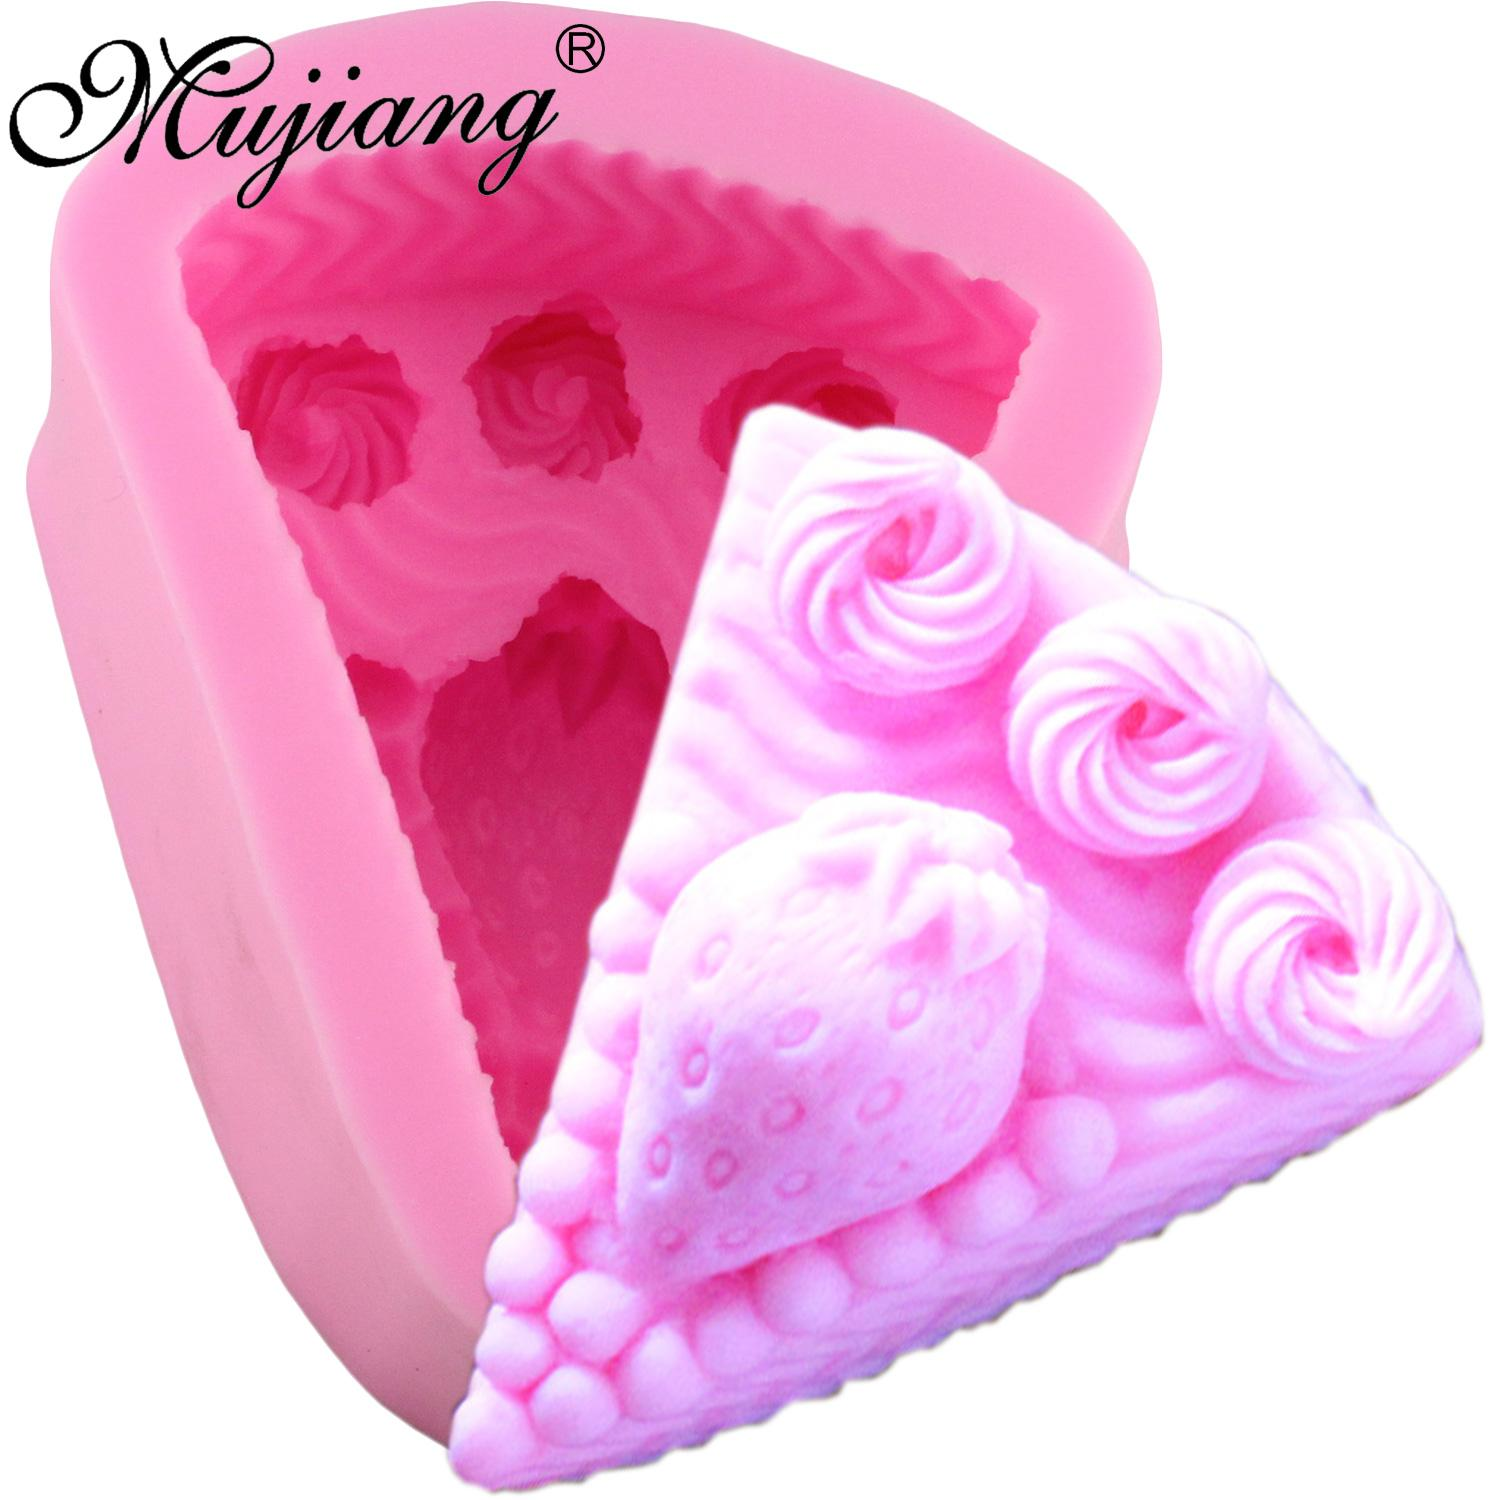 wholesale Strawberry Cake Baking Silicone Mold Fondant Cake Decorating Tools 3D Craft Soap Candle Molds Chocolate Candy Moulds